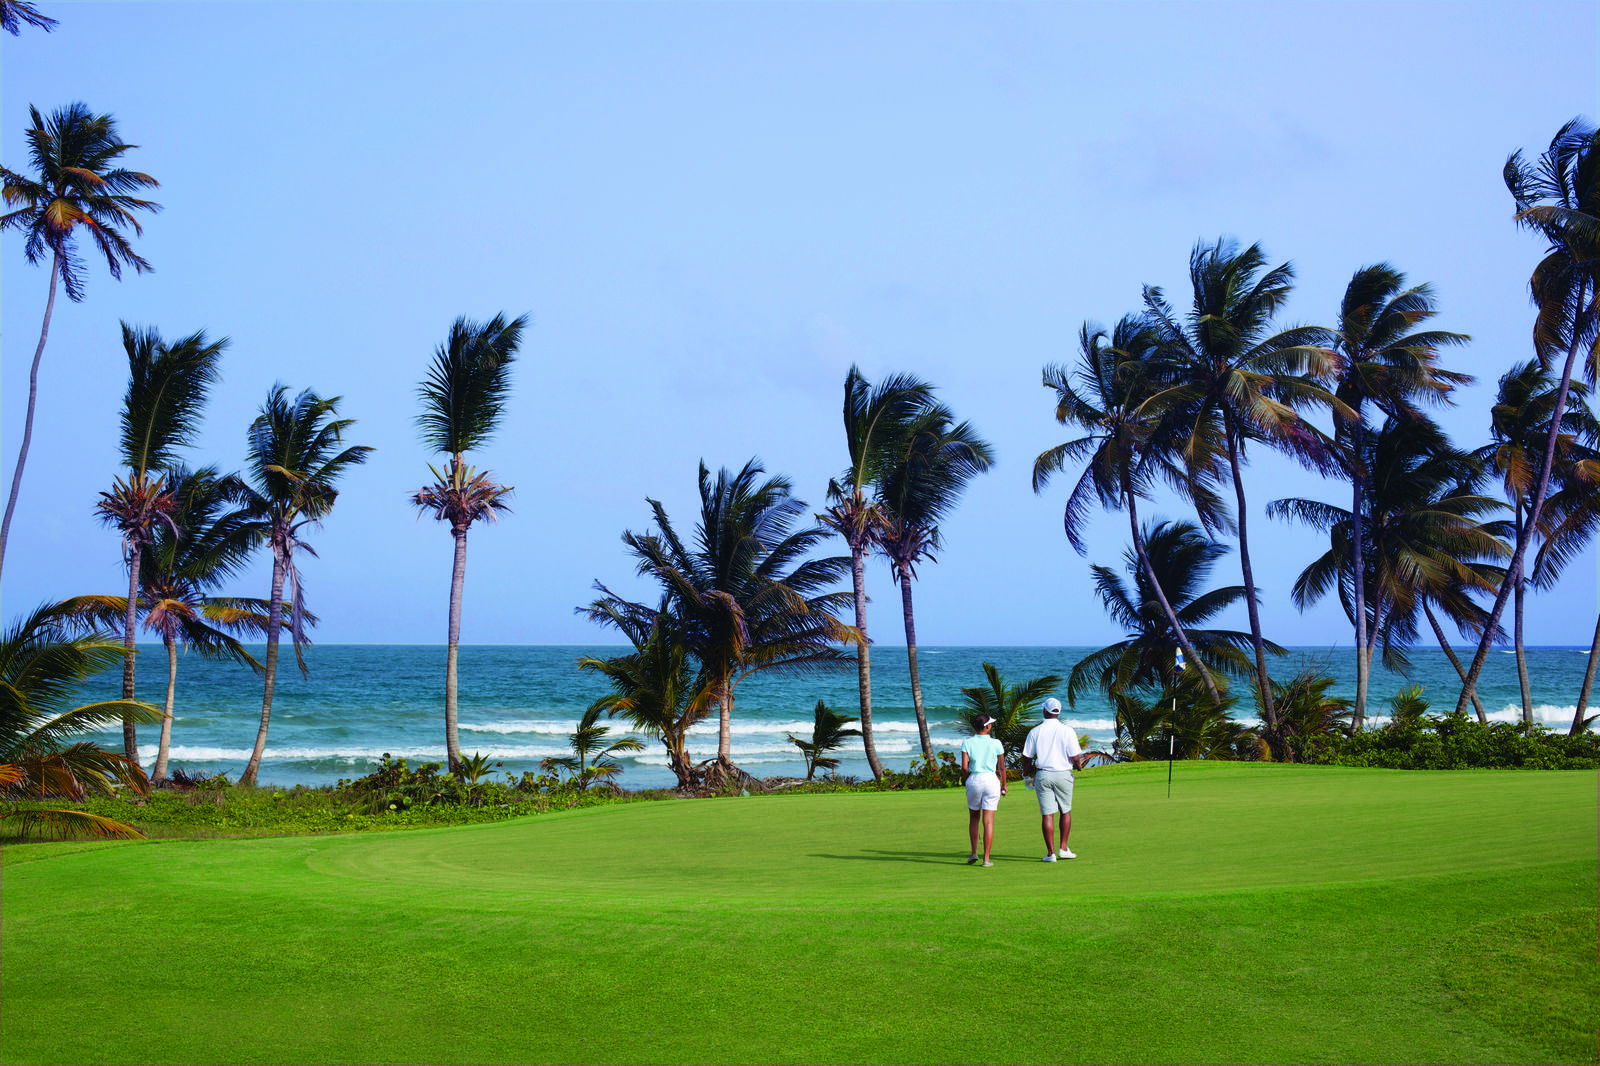 Magdalena Grand Beach and Golf Resort: Destination Trinidad and Tobago | Tours, Holidays, Vacations and Travel Guide